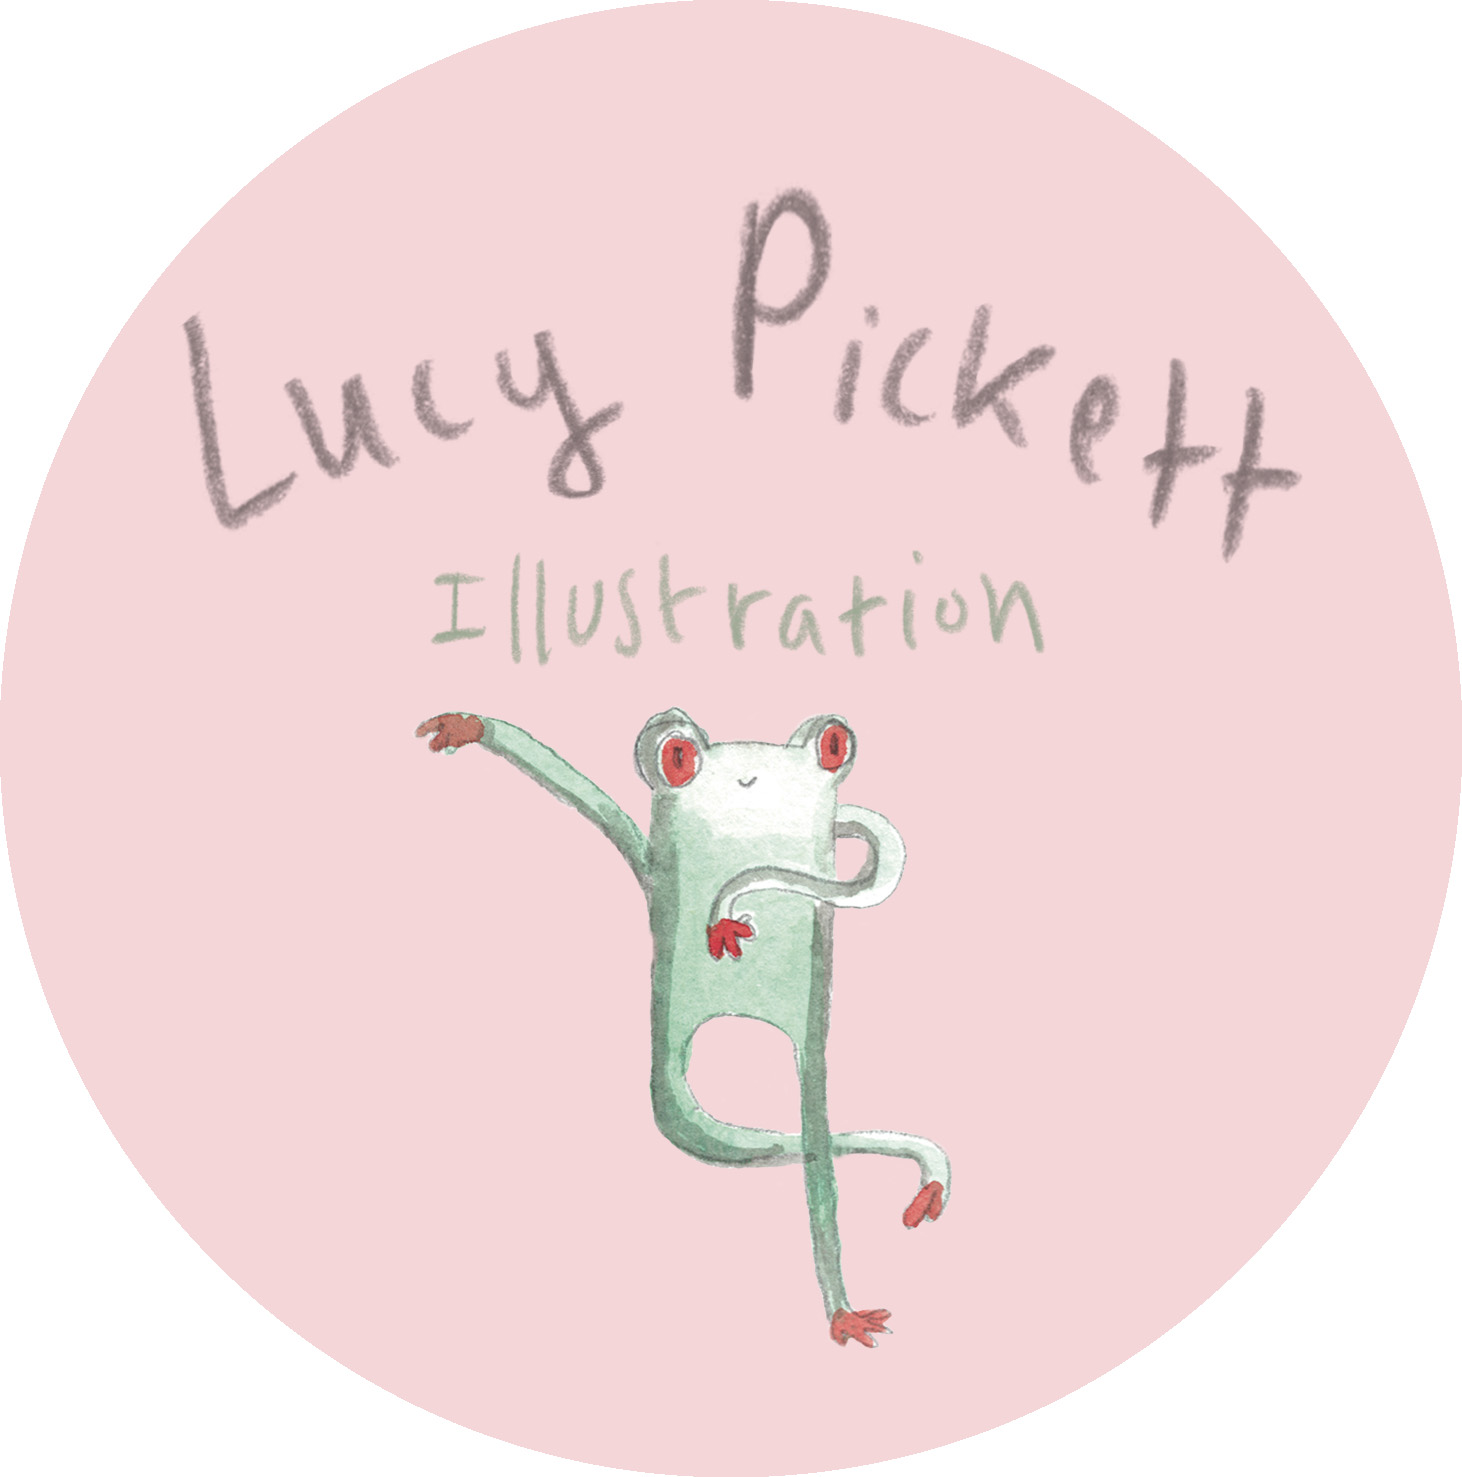 Lucy Pickett Illustration